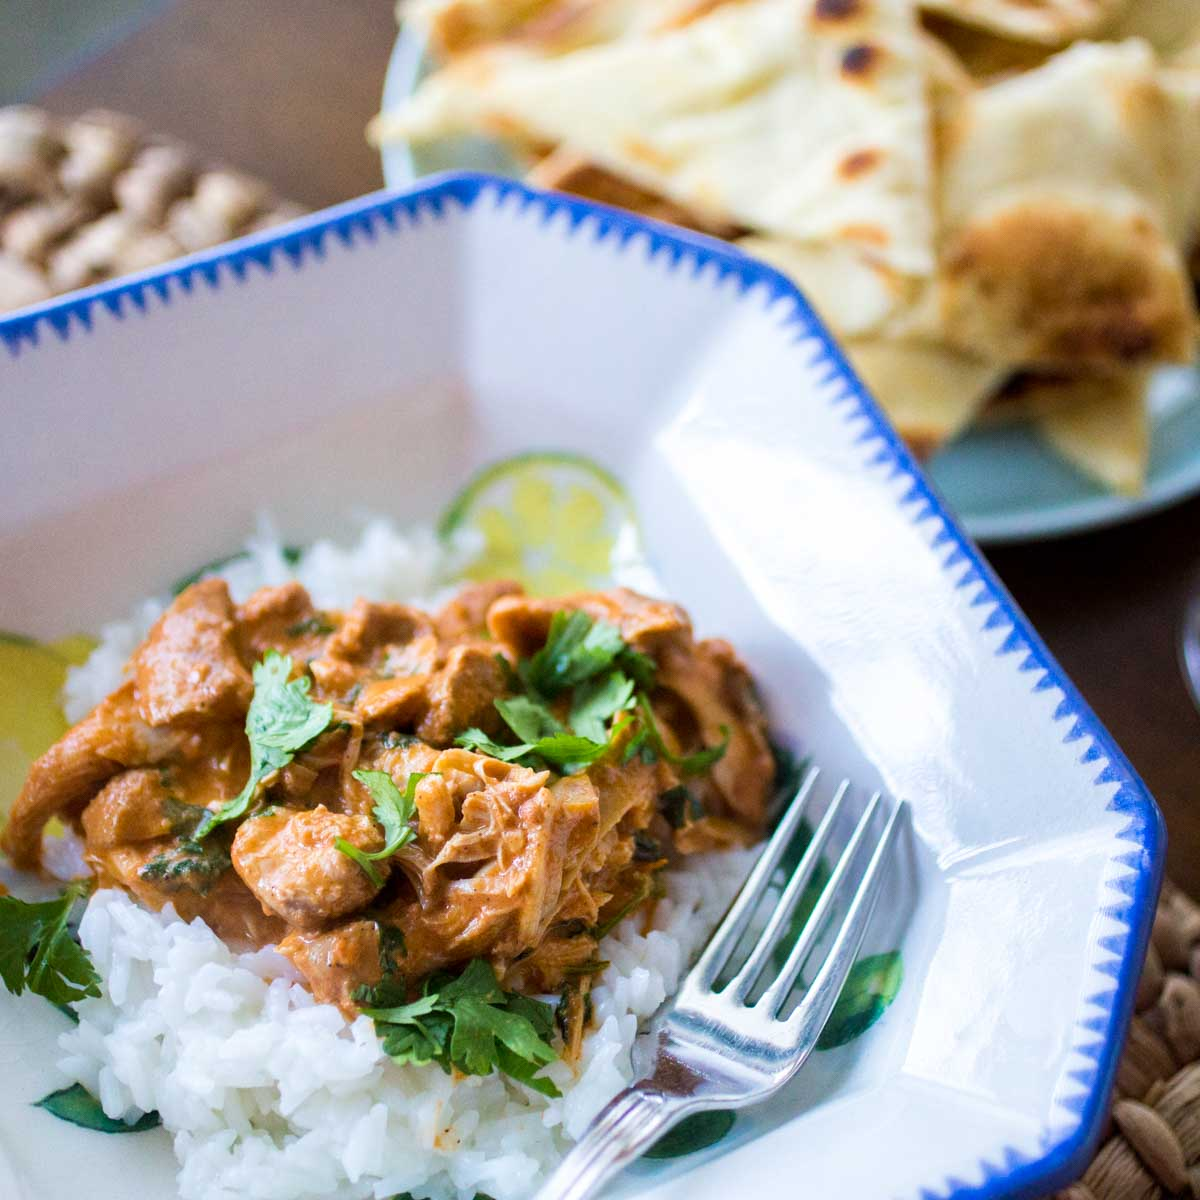 A dinner bowl has a serving of butter chicken spooned over jasmine rice. Fresh cilantro is sprinkled over the top.